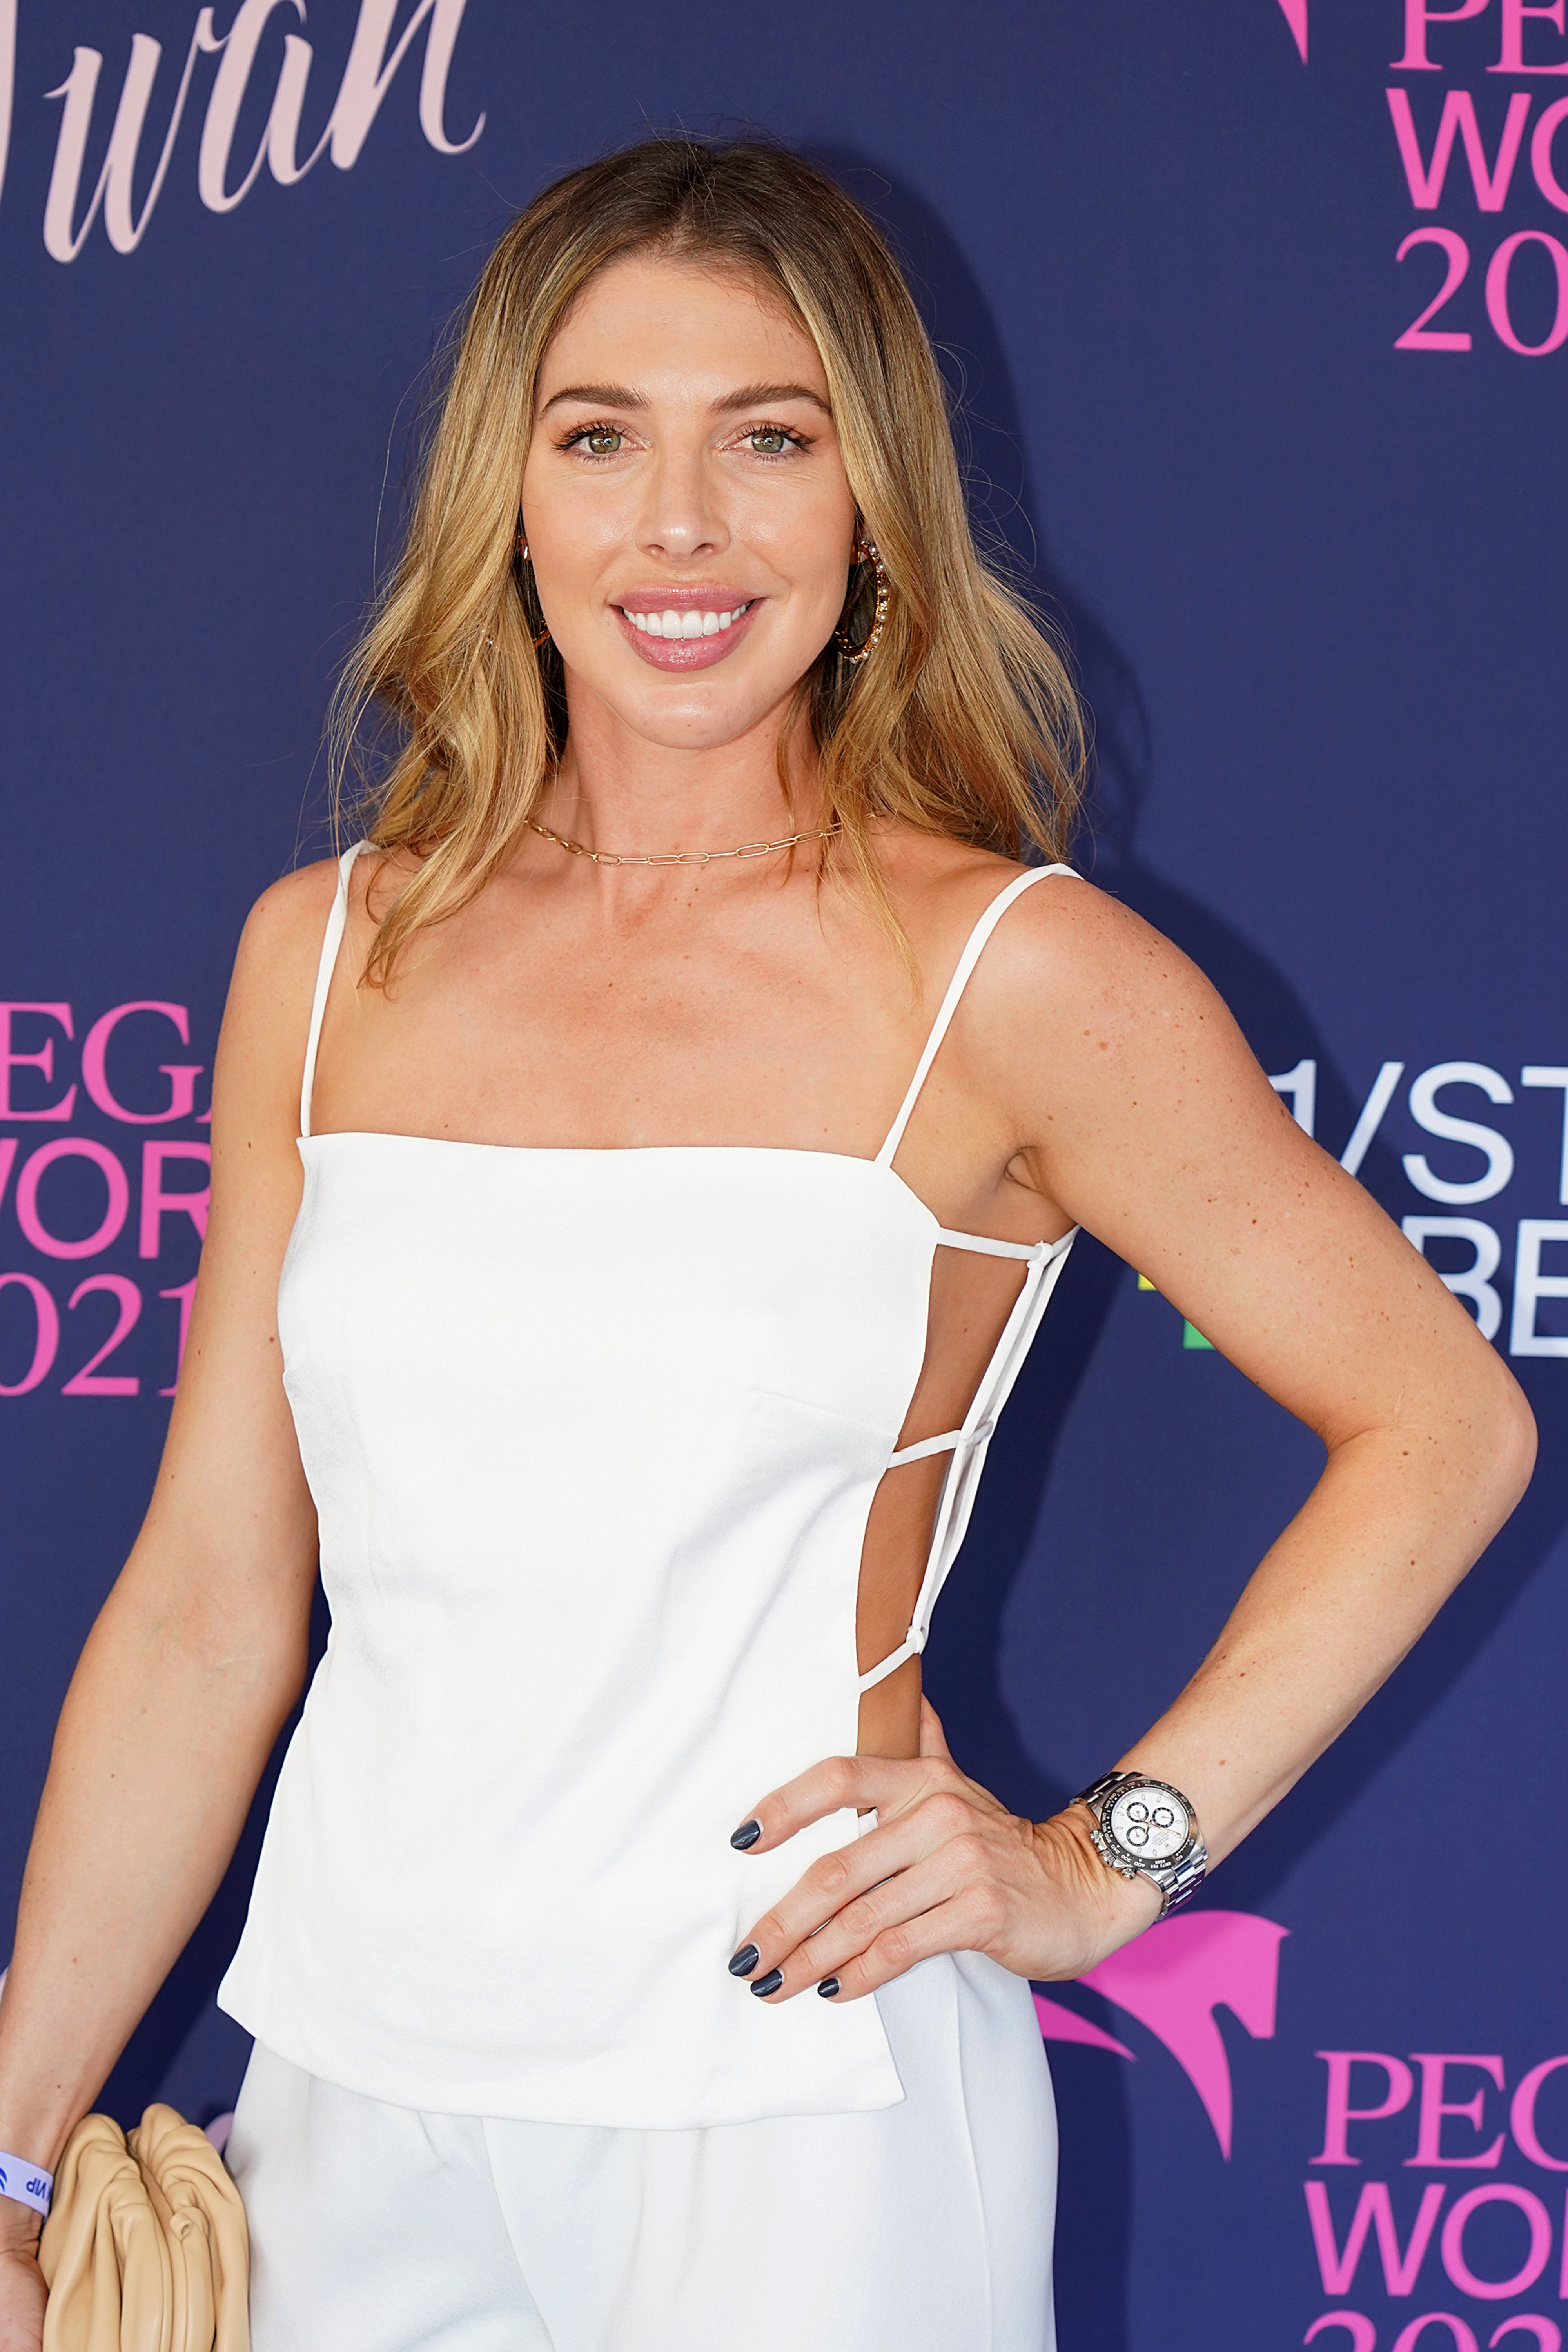 Hannah Selleck attends the 2021 Pegasus World Cup Championship Invitational Series at Gulfstream Park on January 23, 2021 in Hallandale Beach, Florida | Photo: Getty Images